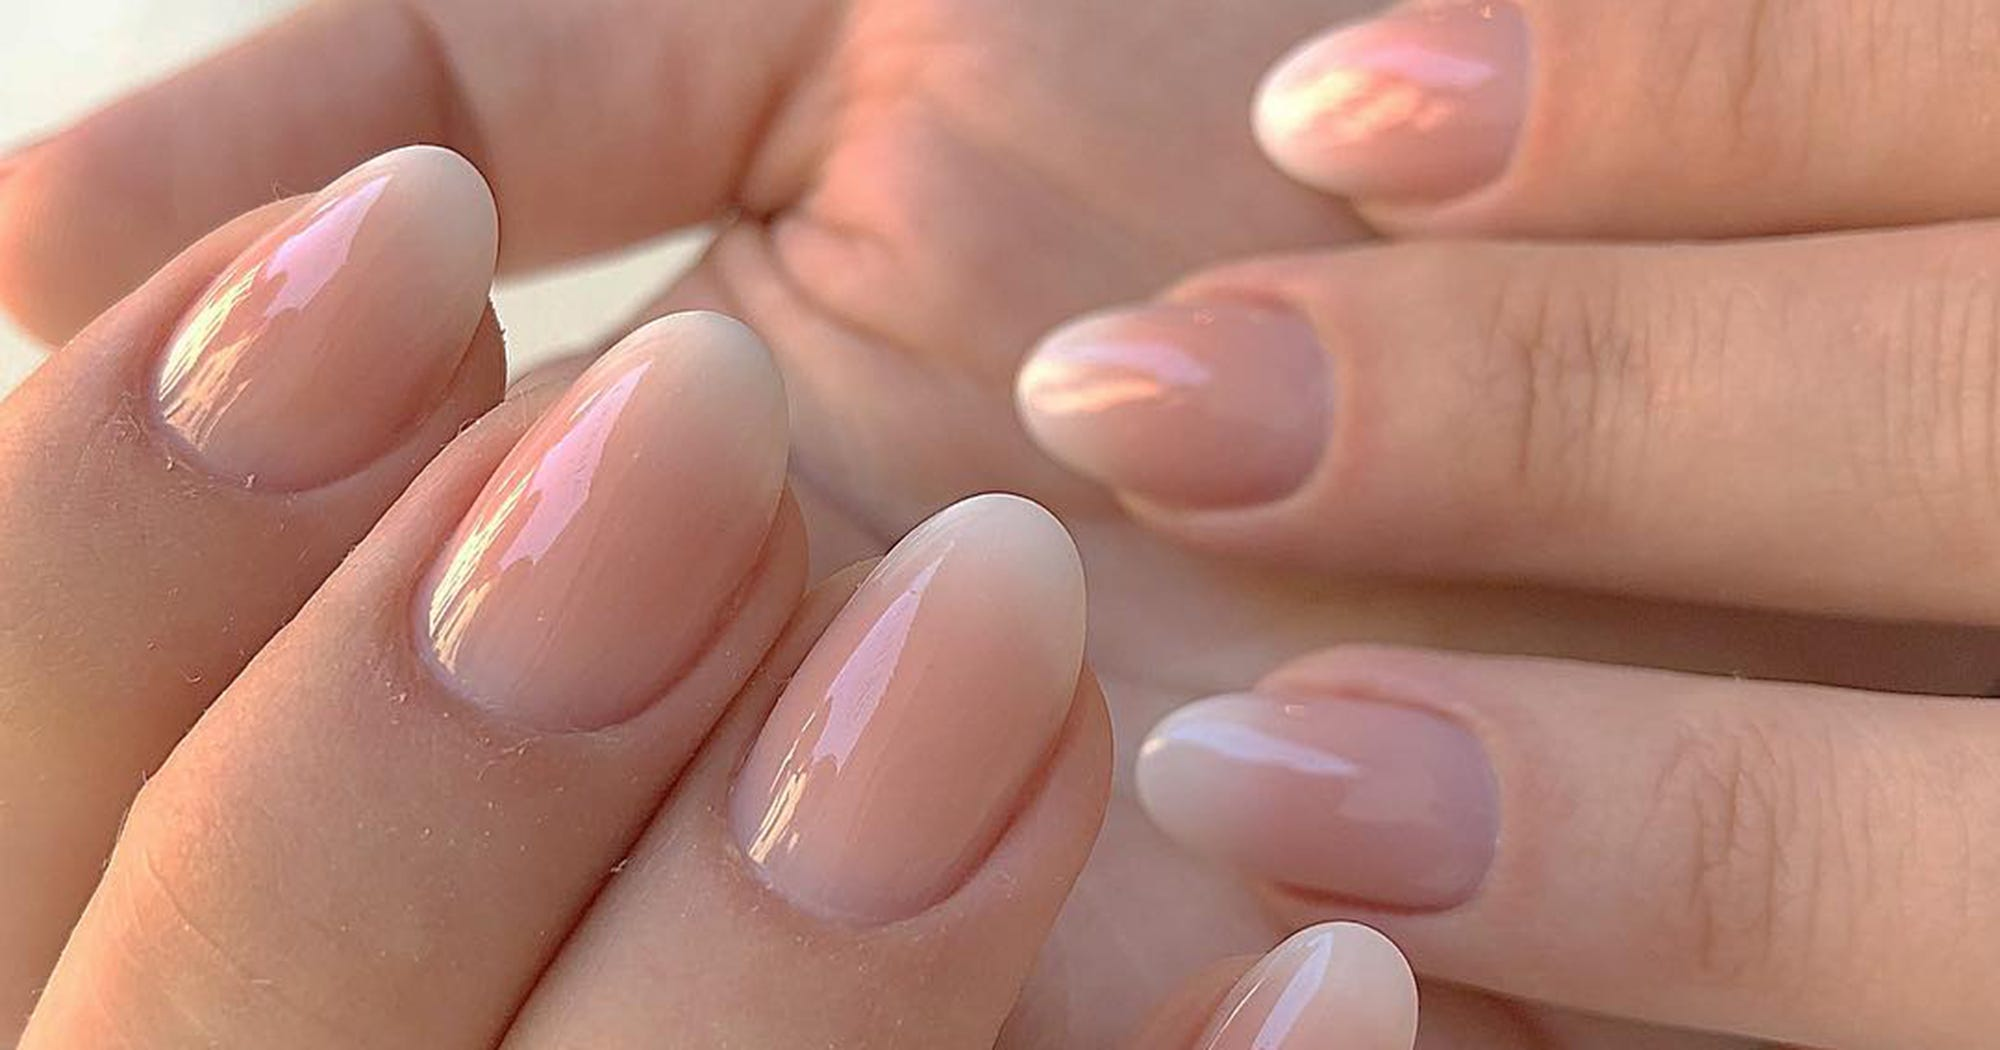 Baby Boomer Nails: Here's The 411 On The French Mani Remix